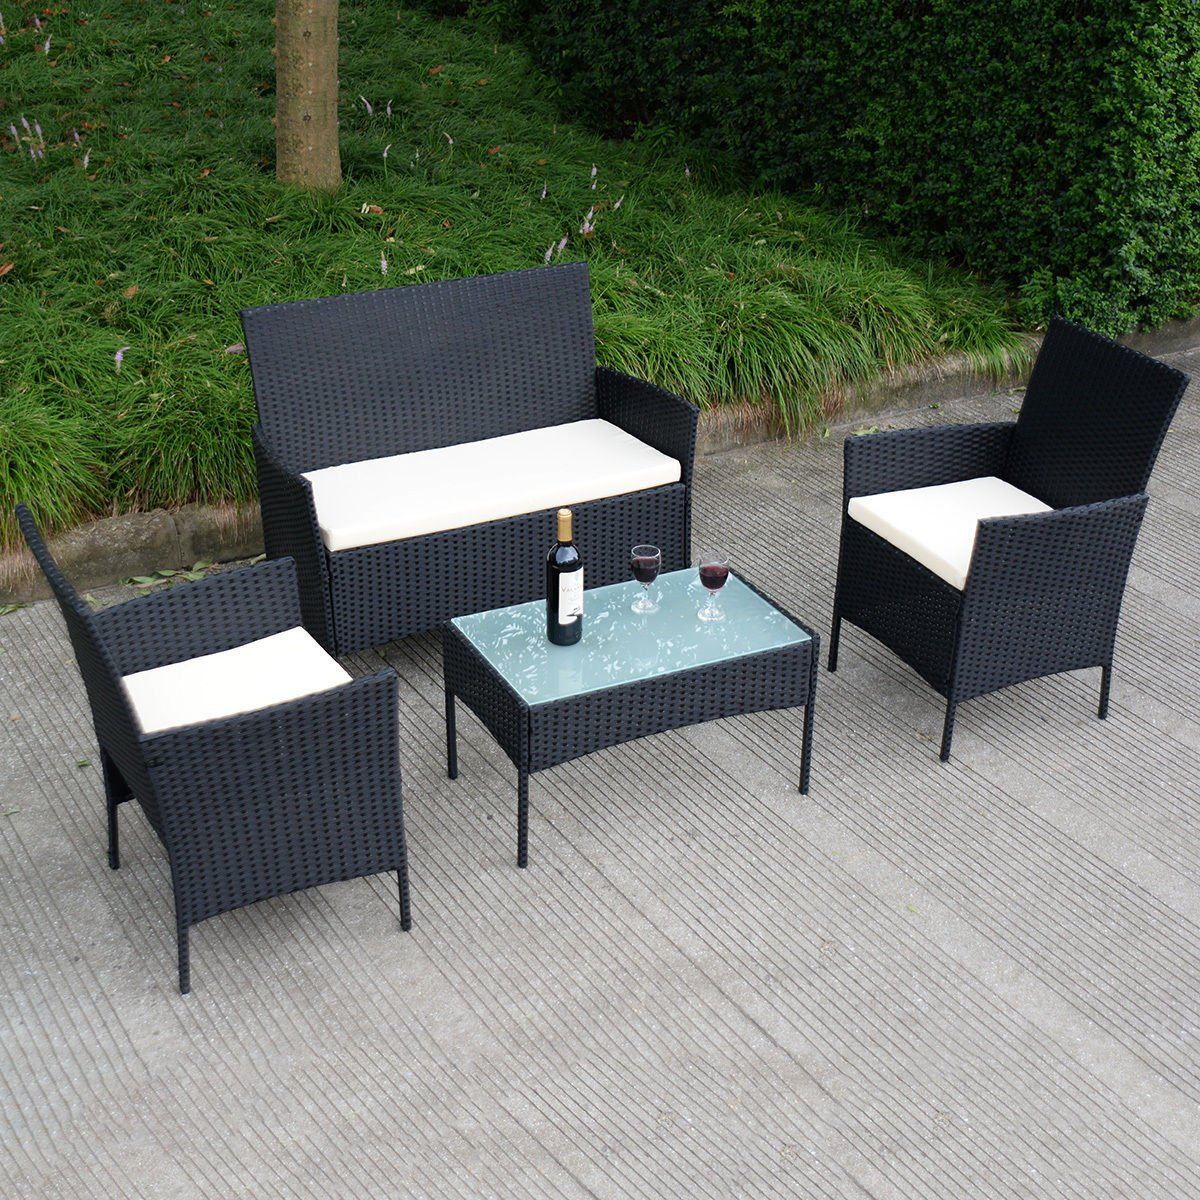 Superior Amazon.com : Tangkula 4 Pcs Wicker Furniture Set Rattan Sofas Garden Lawn  Patio Furniture : Garden U0026 Outdoor